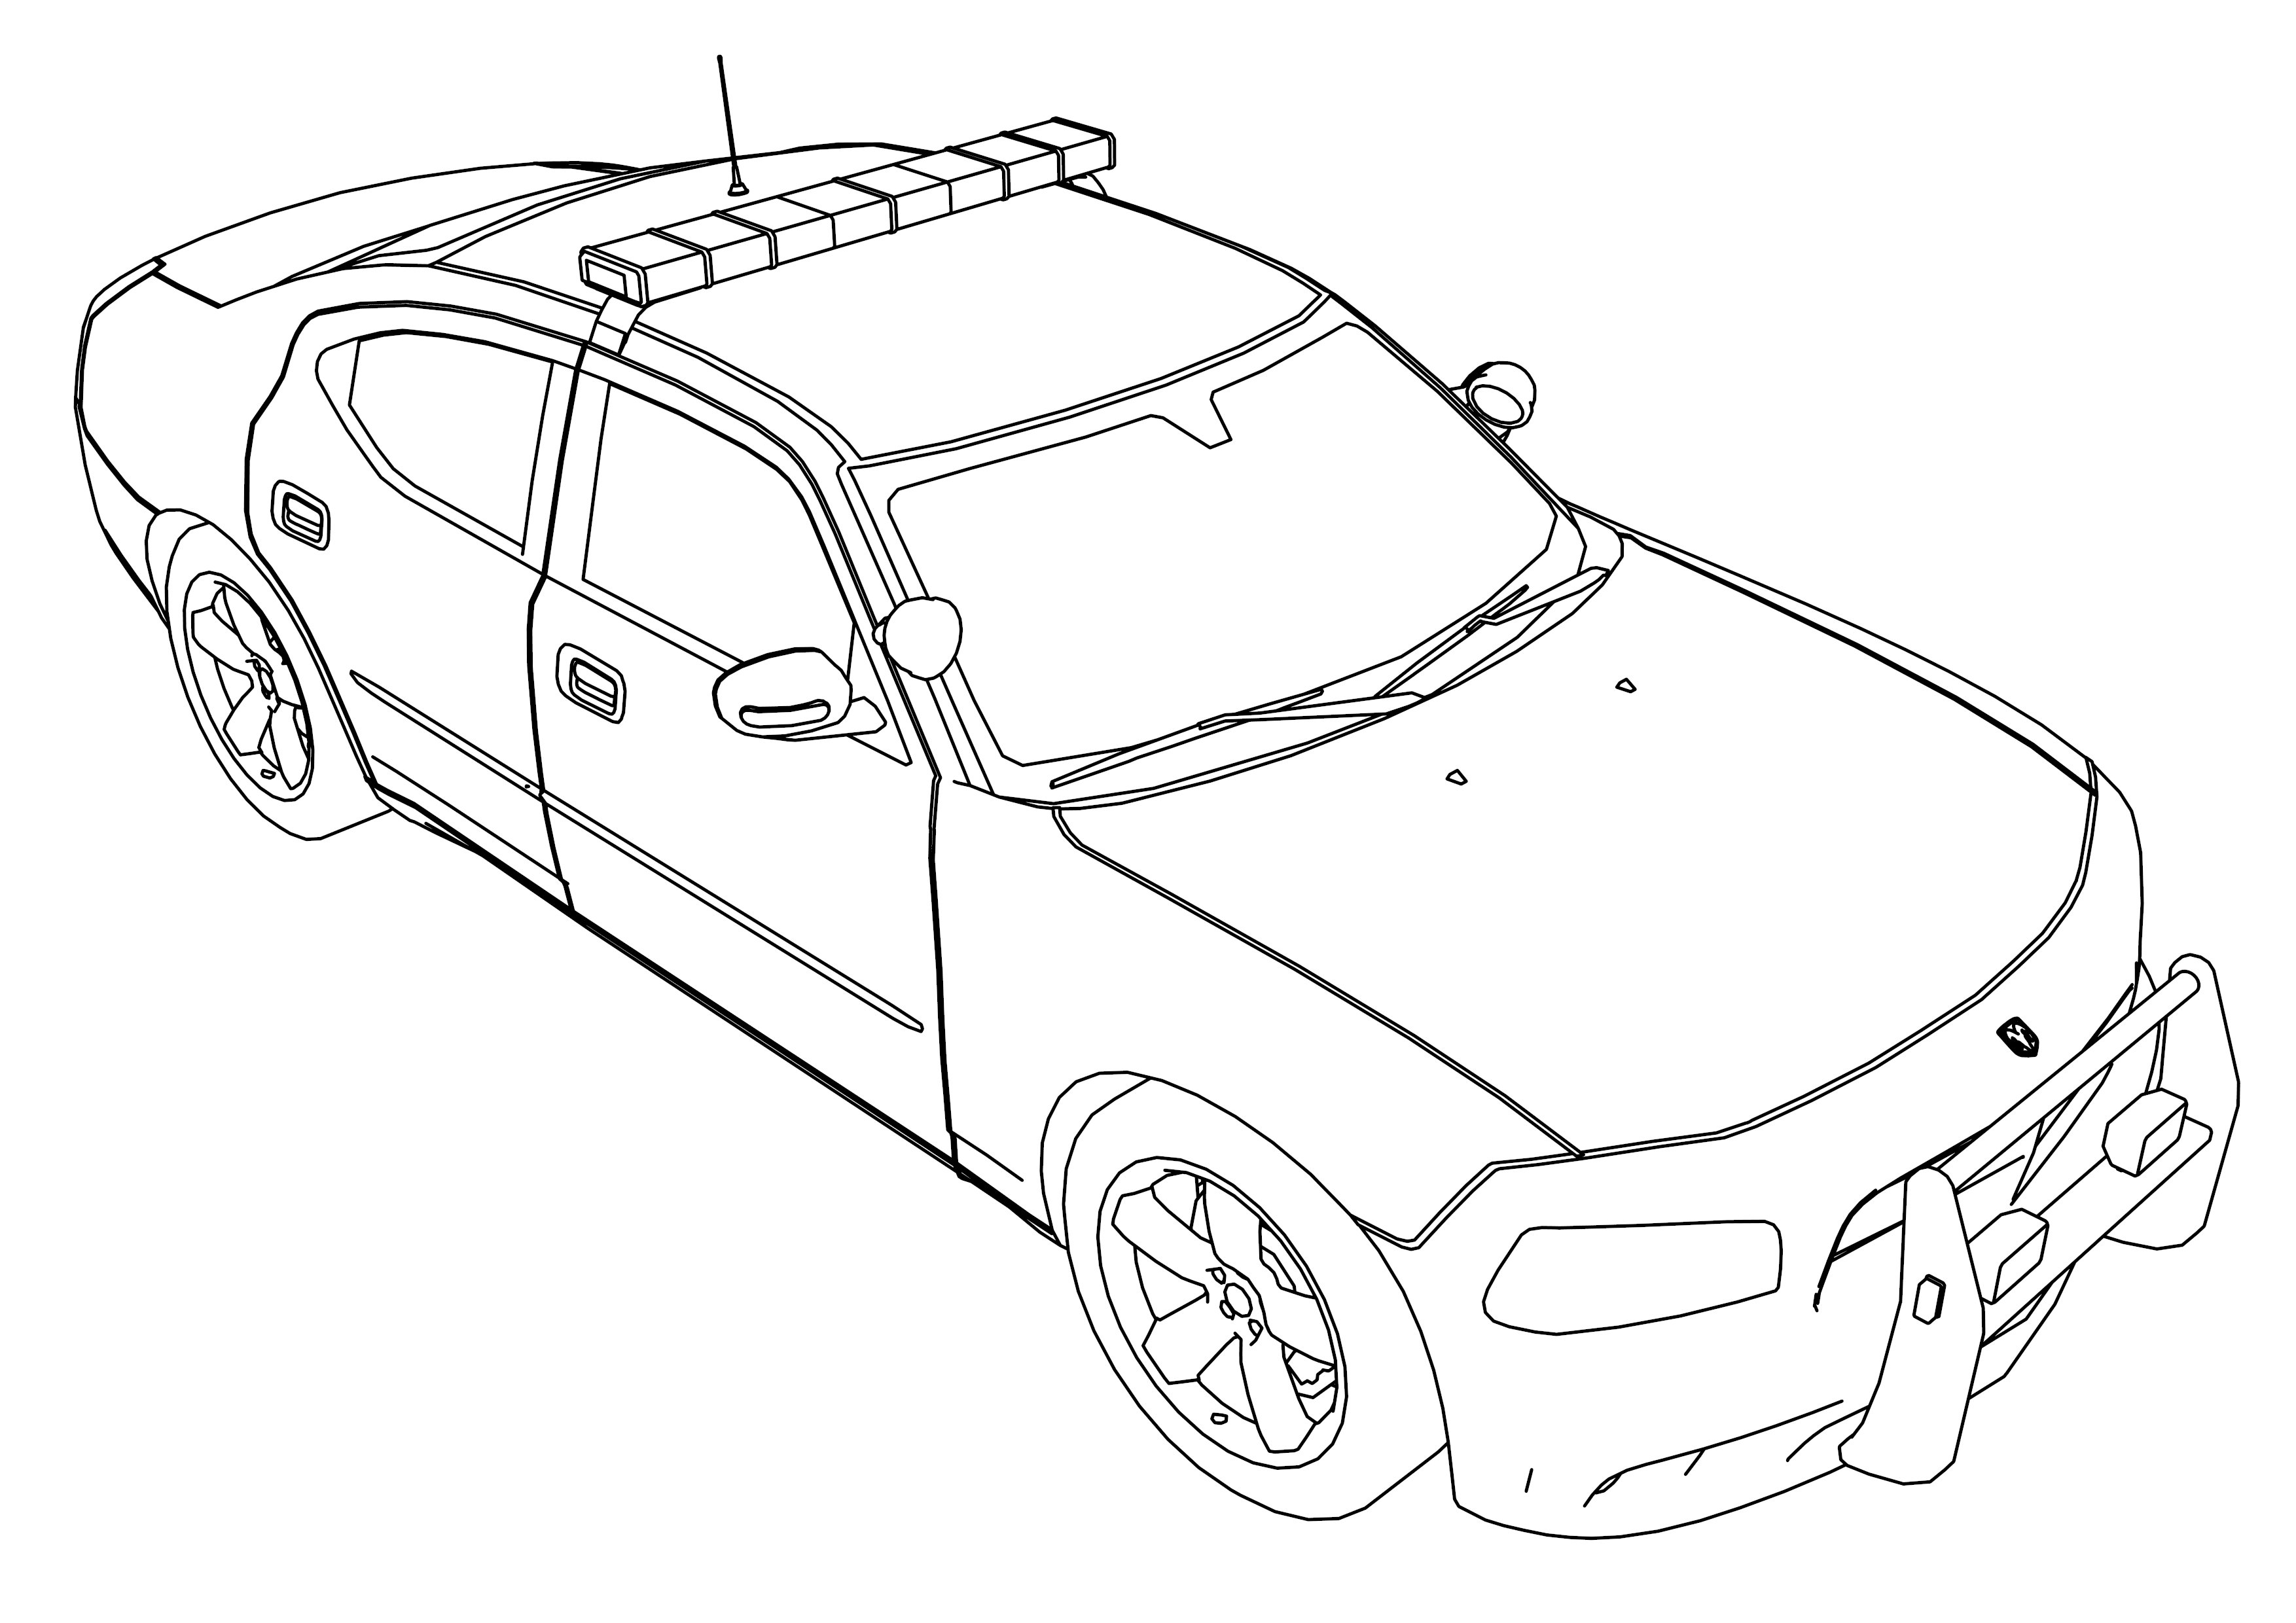 This is an image of Enterprising printable coloring pages of police cars